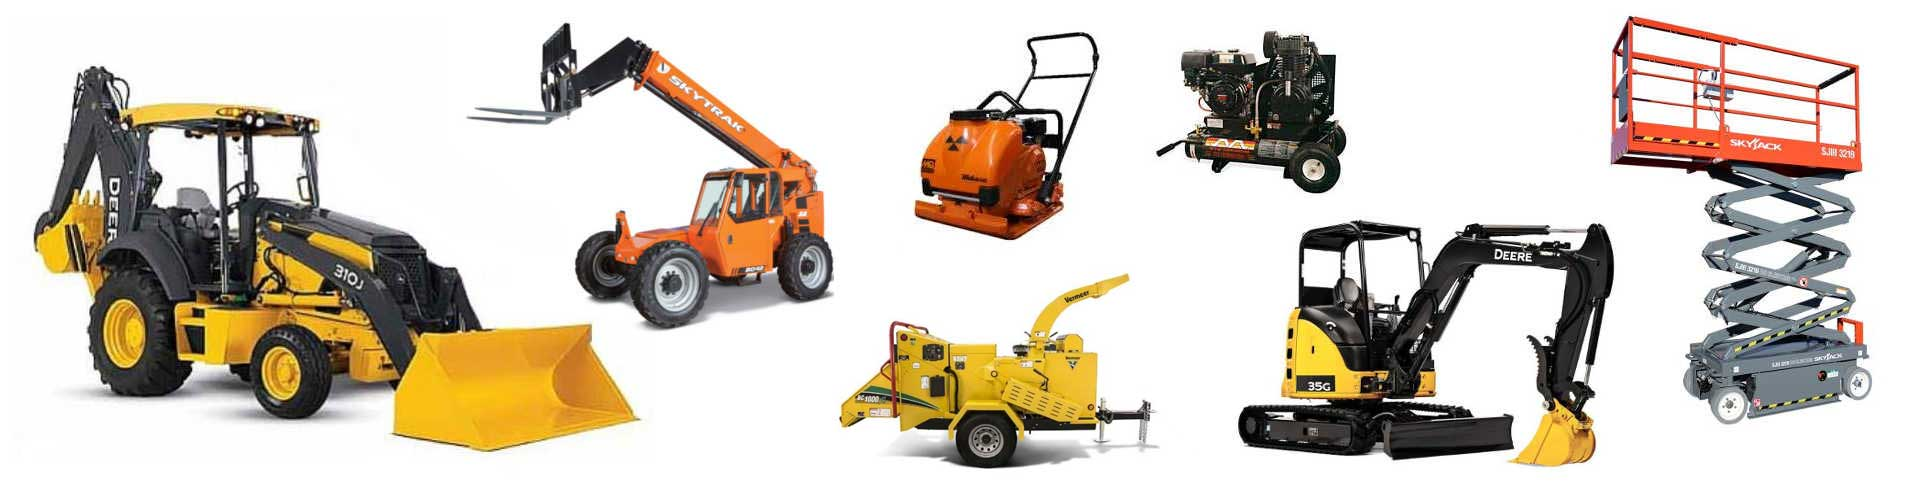 Builder Tool Rentals in Berks County